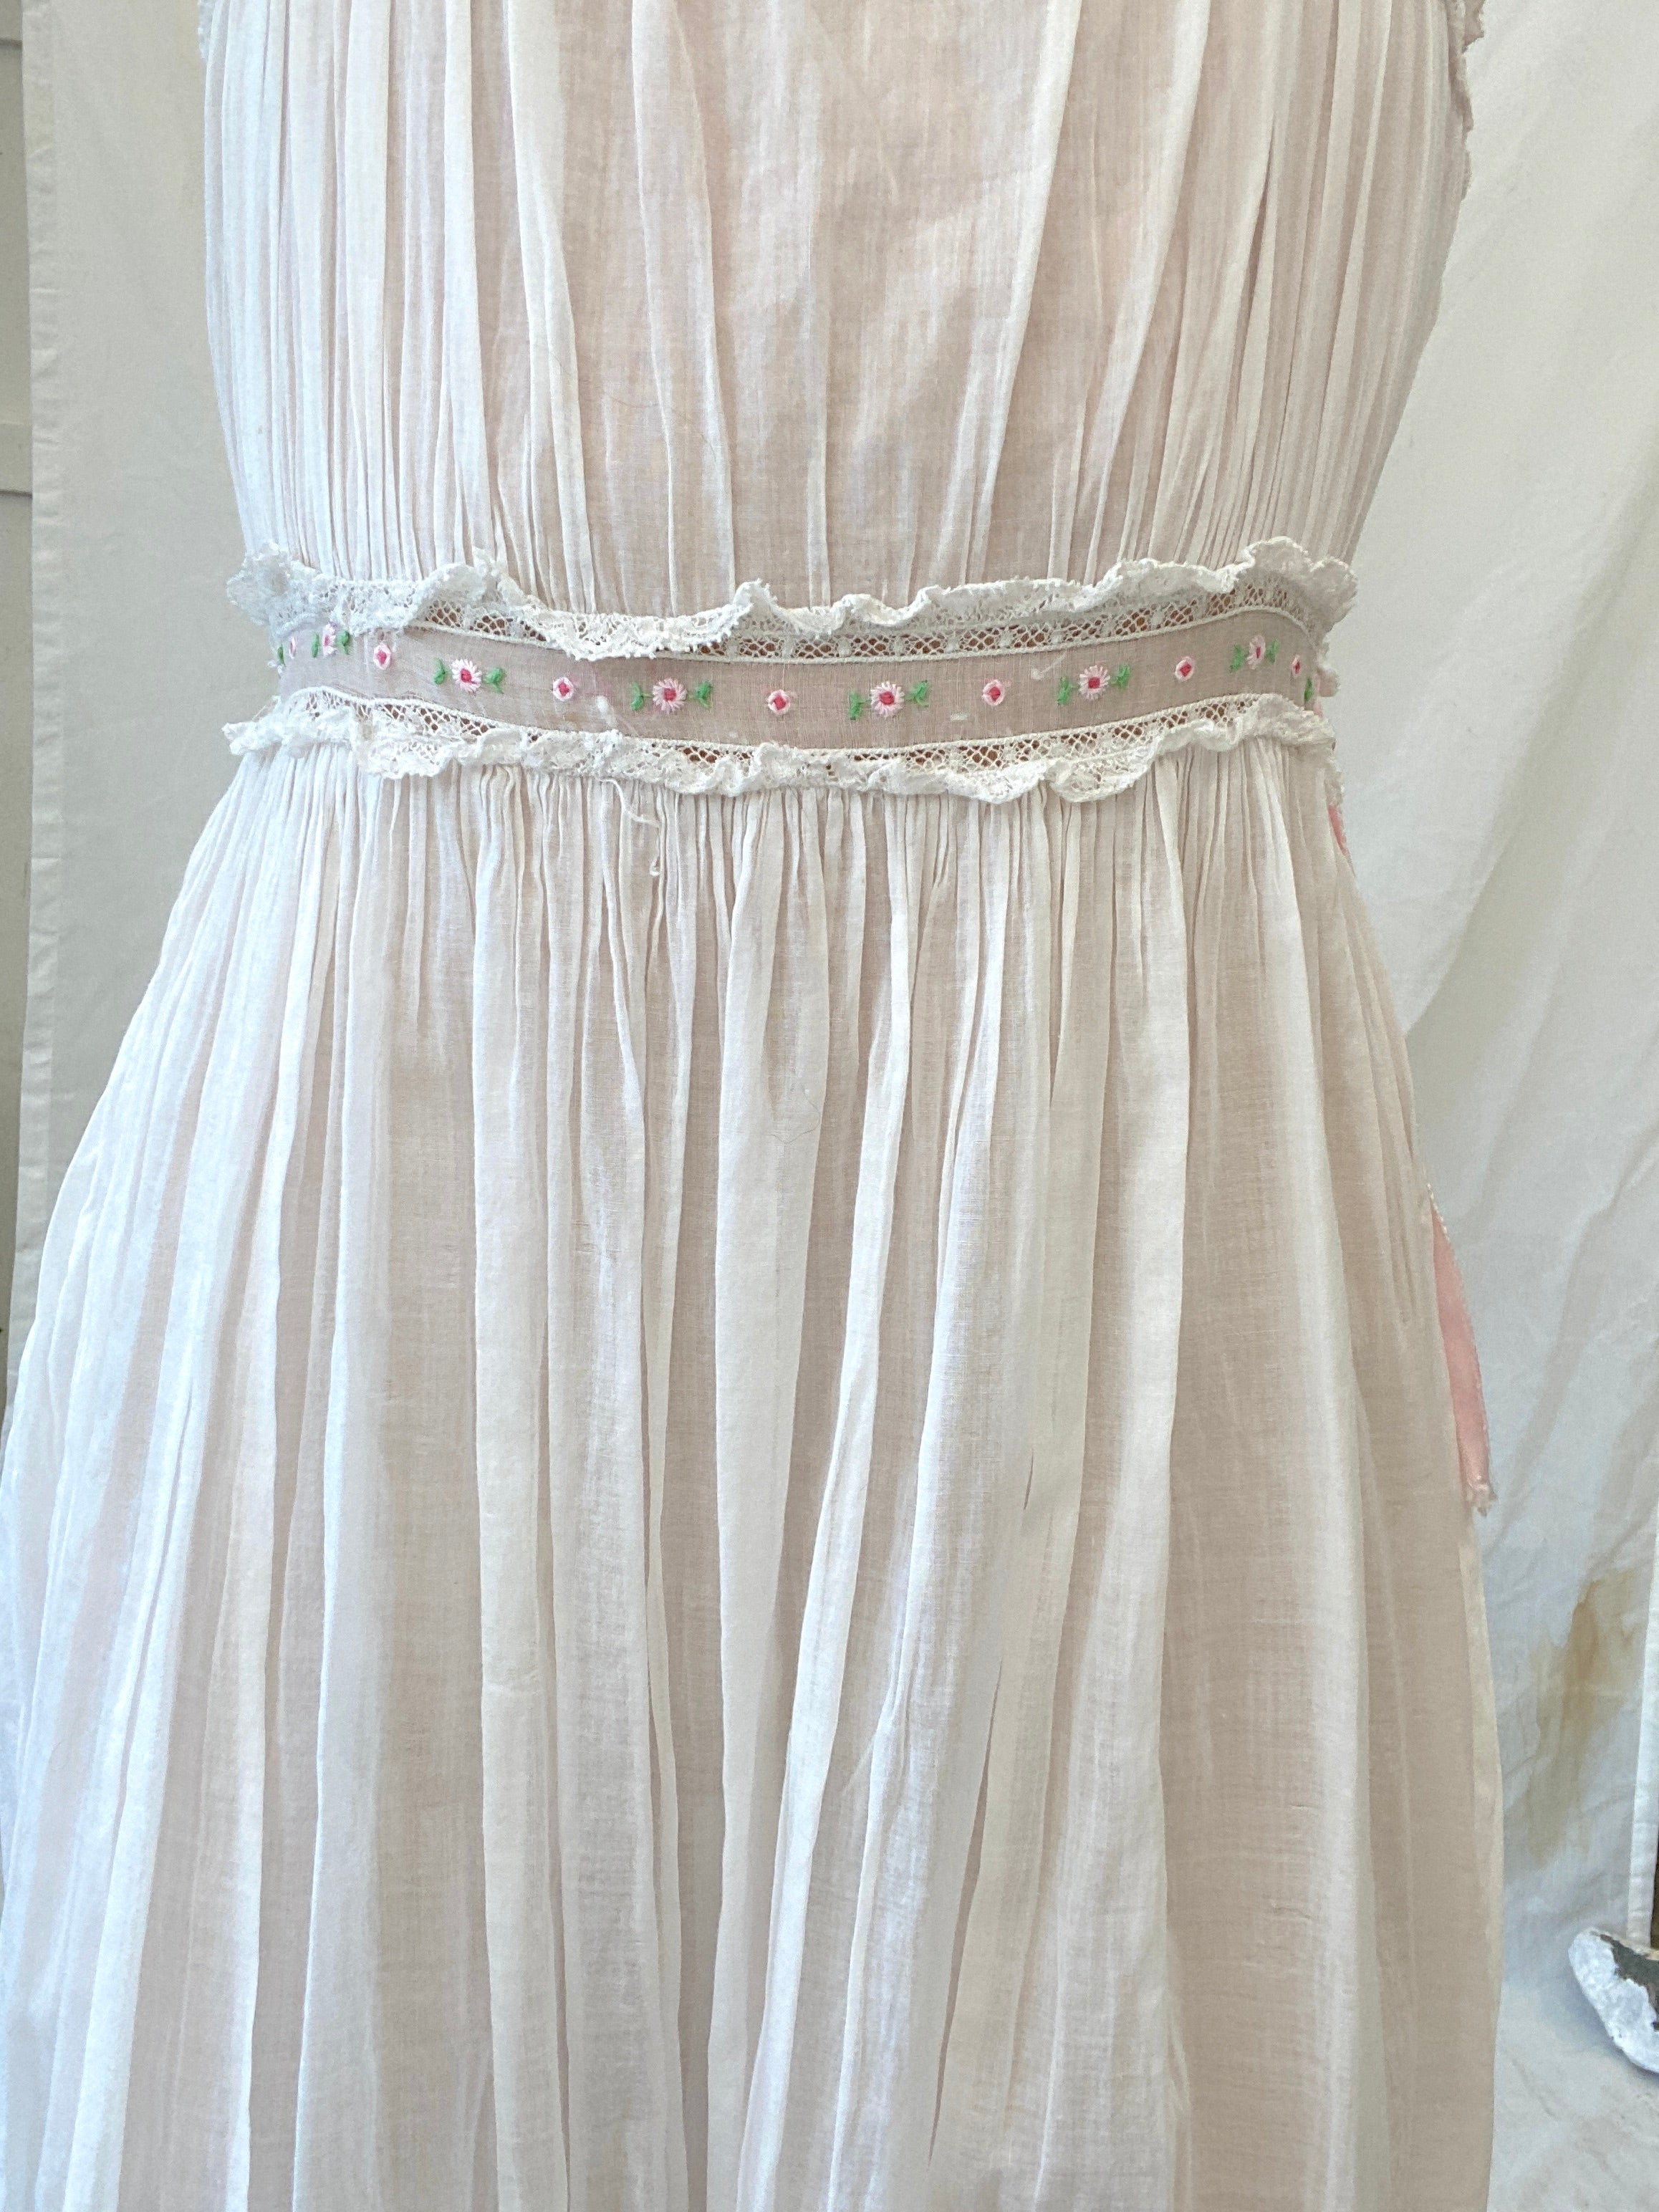 White Cotton Dress with Floral Embroidery